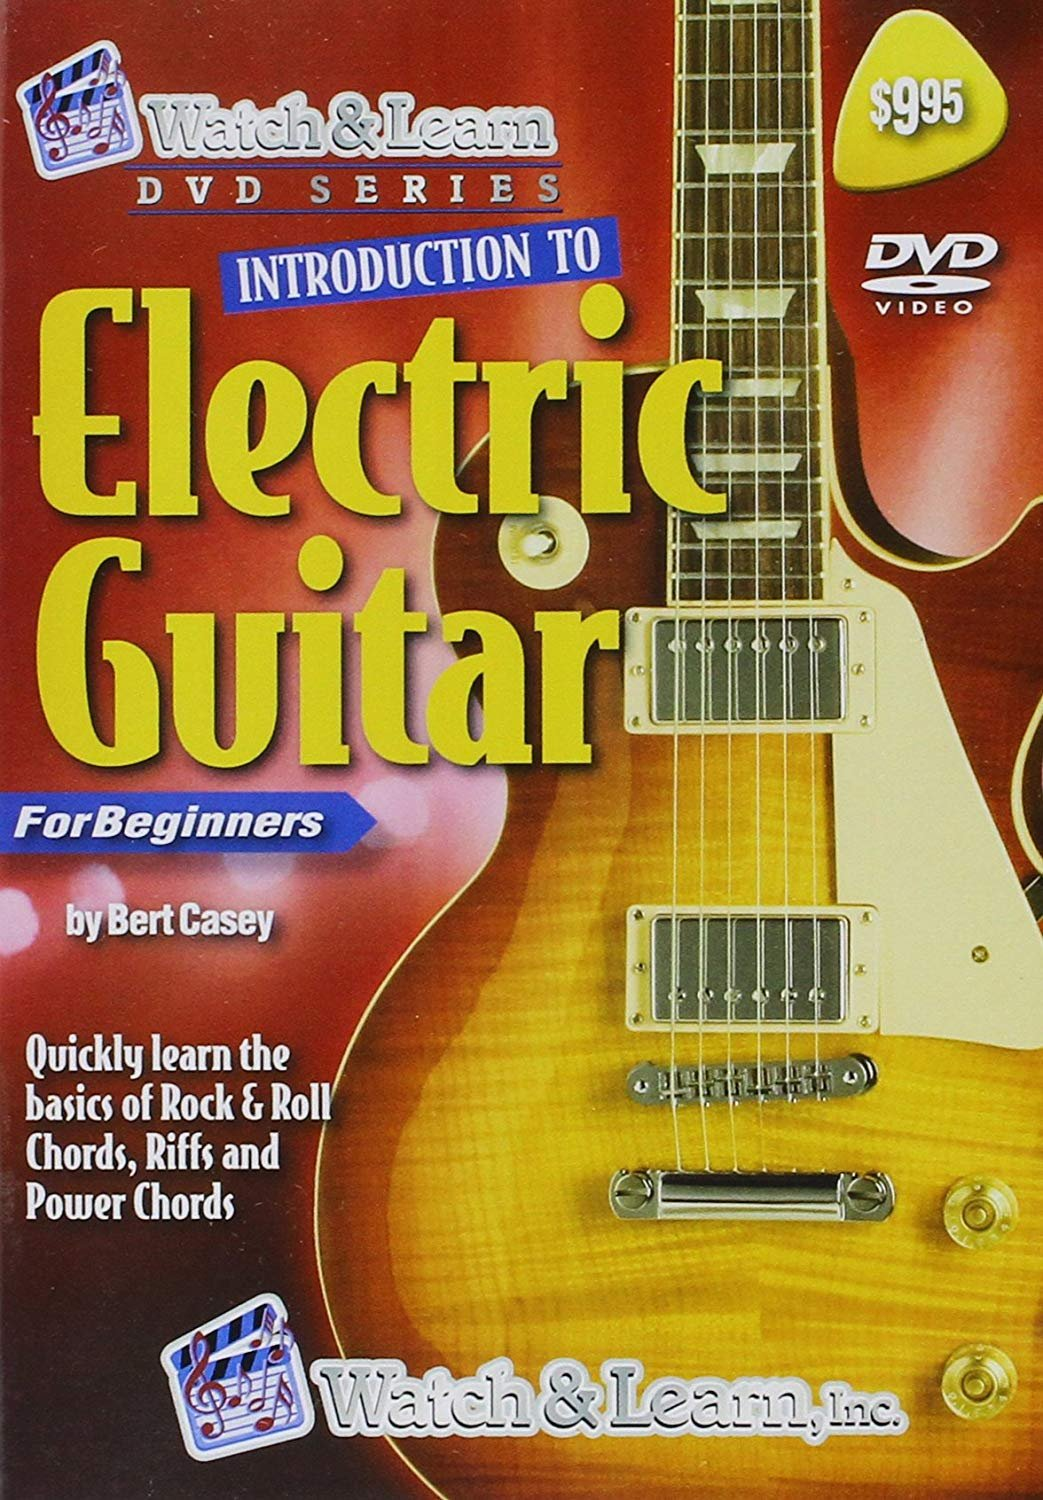 Intro to Electric Guitar DVD